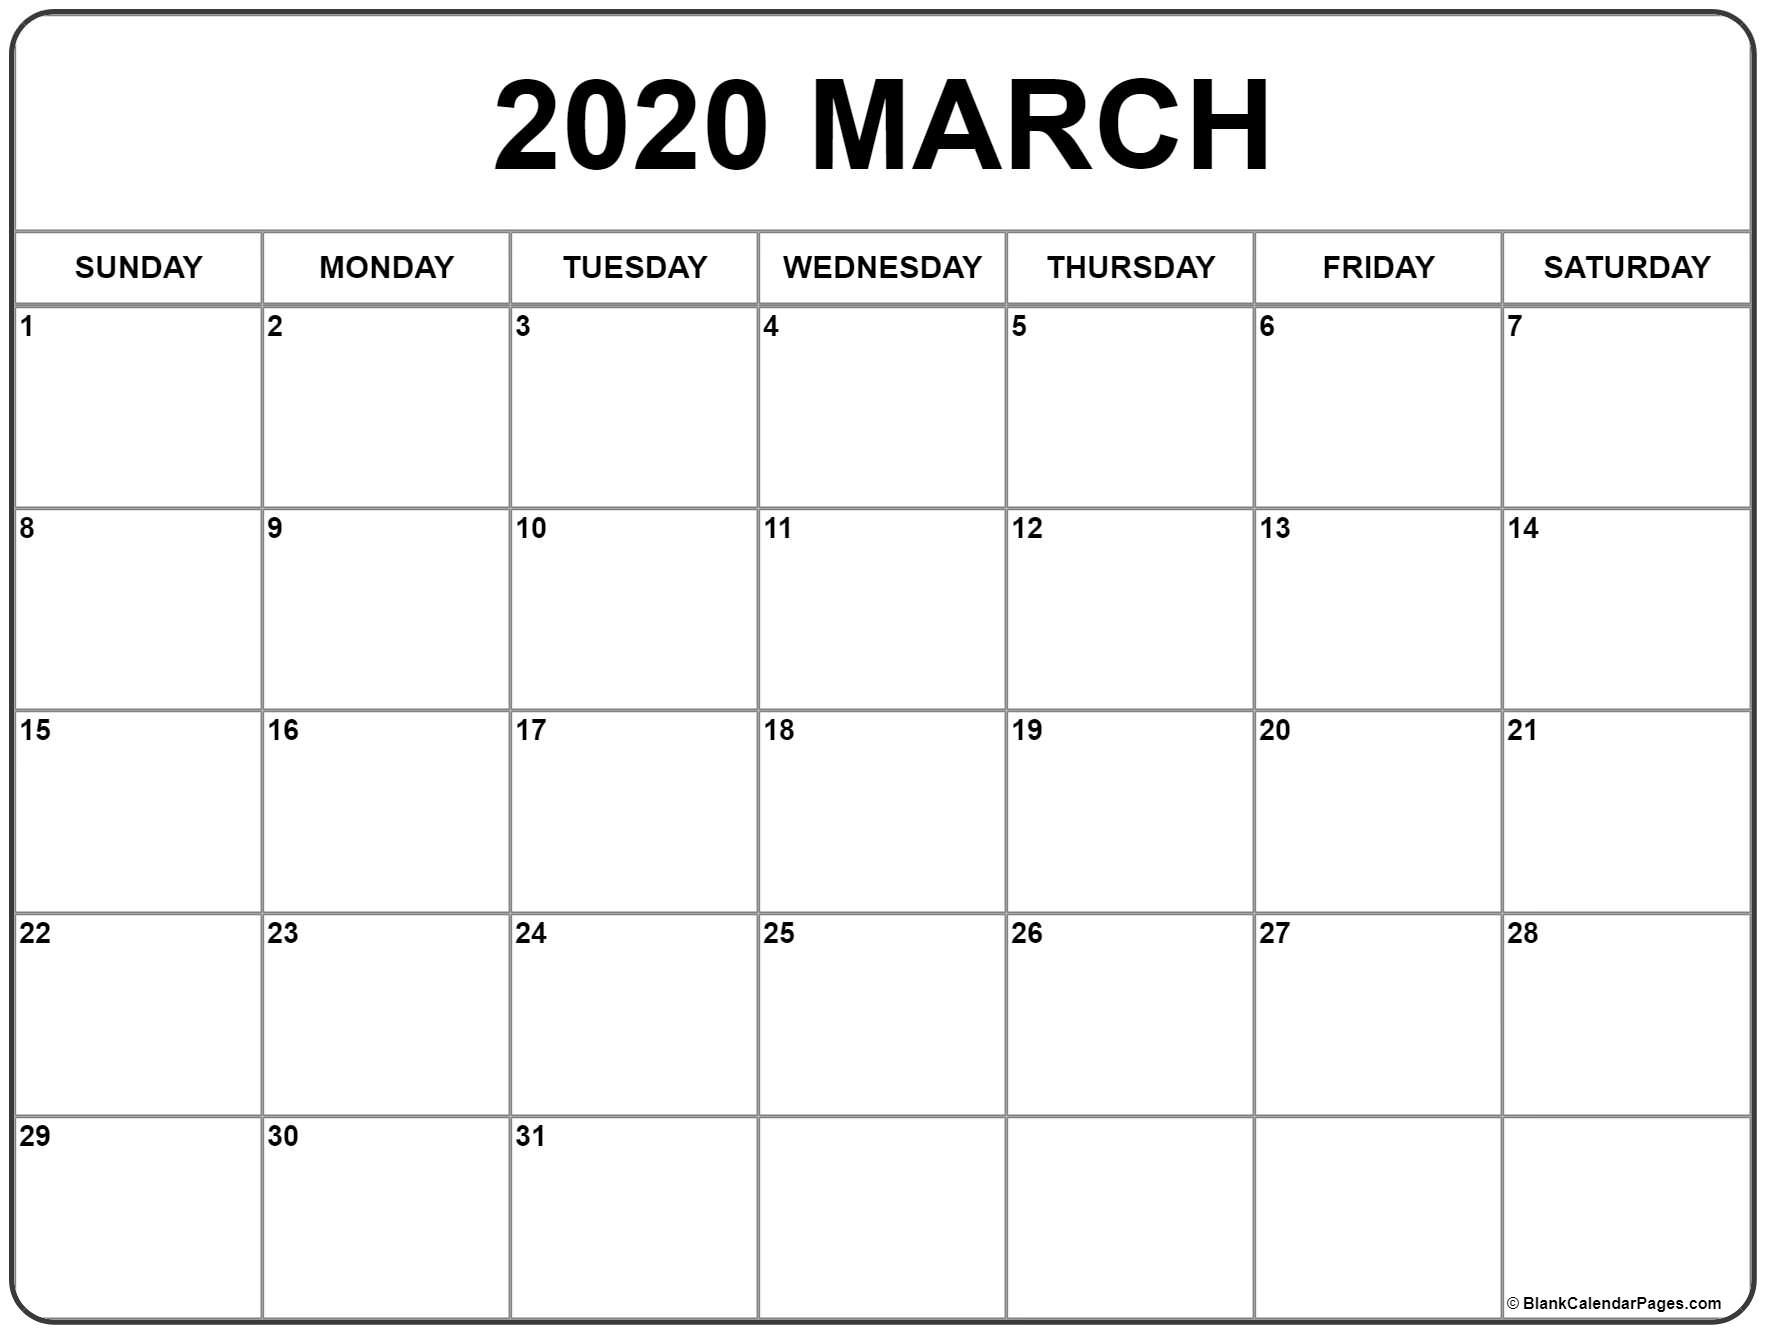 March 2020 Calendar | Free Printable Monthly Calendars-Blank